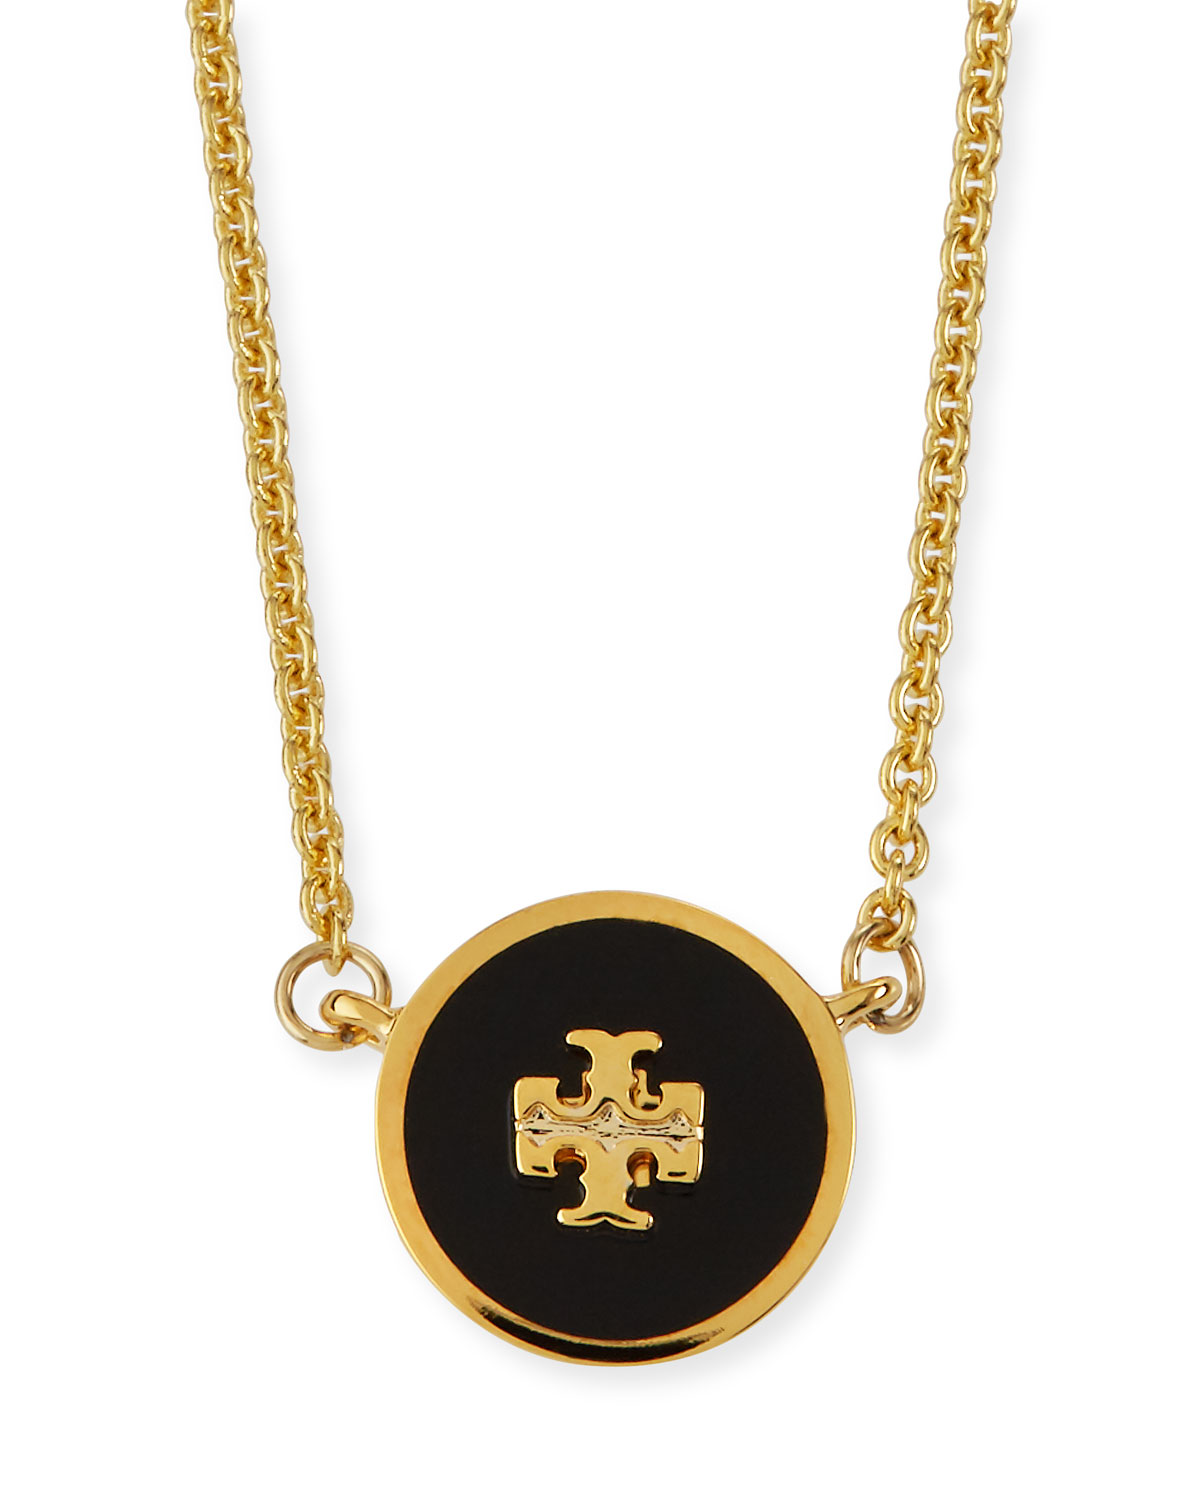 Tory Burch Kira Enamel Pendant Necklace, Black